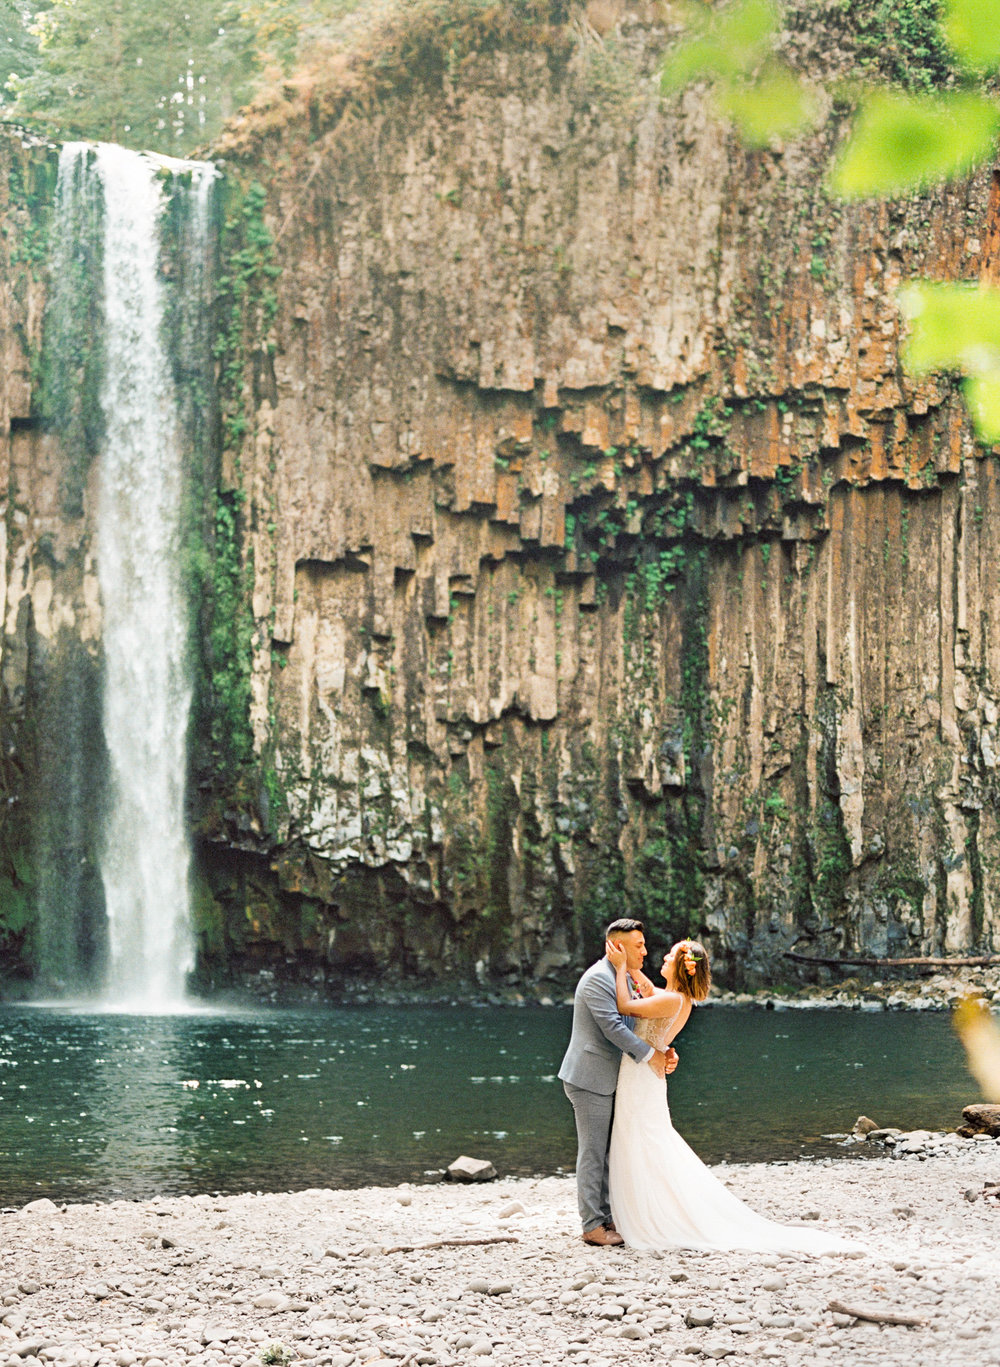 abiqua_falls_elopement_wedding_oregon_photographer_videographer_104.jpg